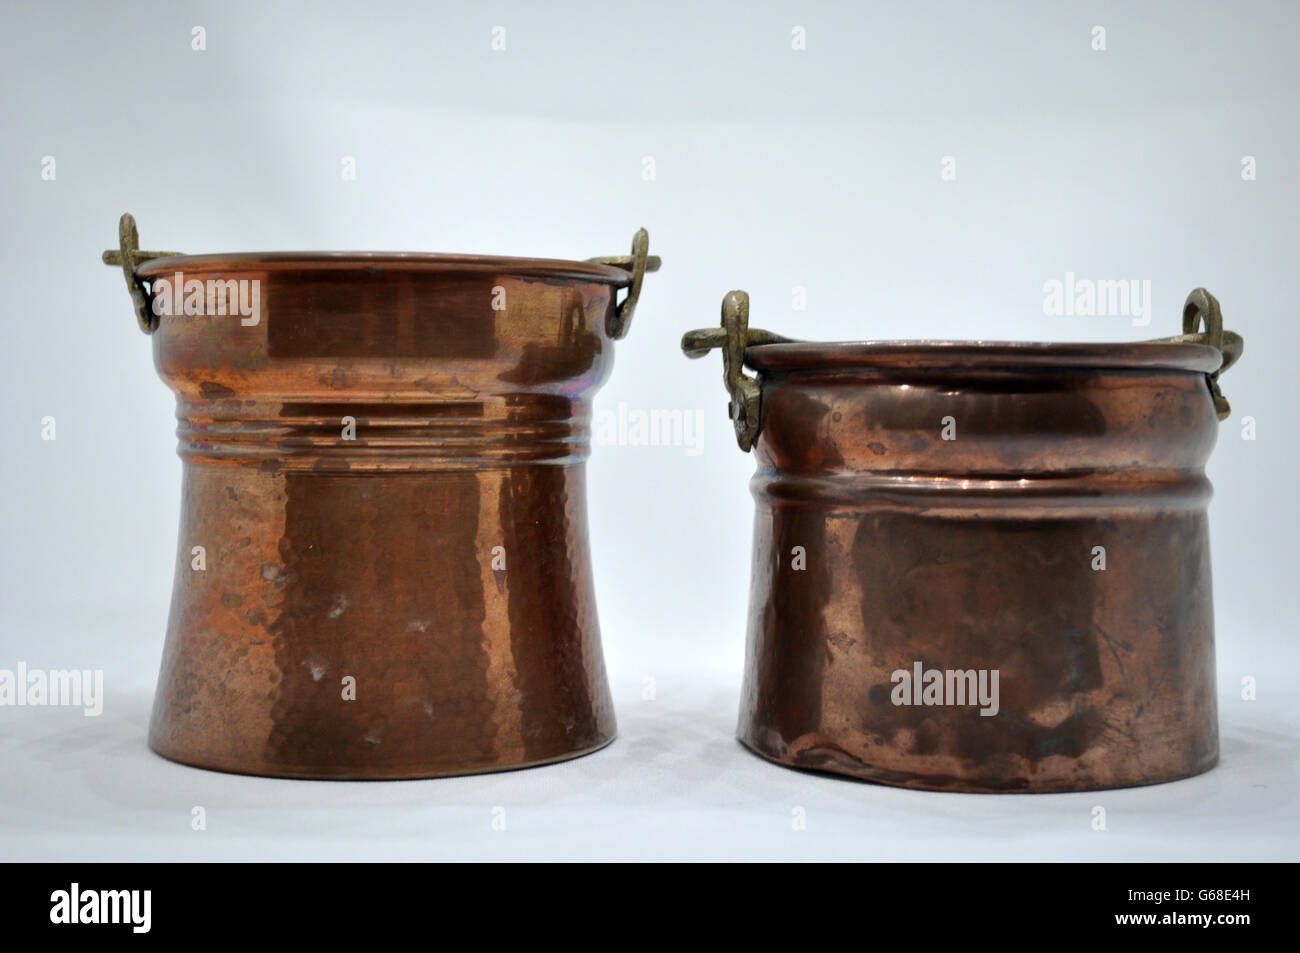 two shiny copper cauldrons with reflections - Stock Image